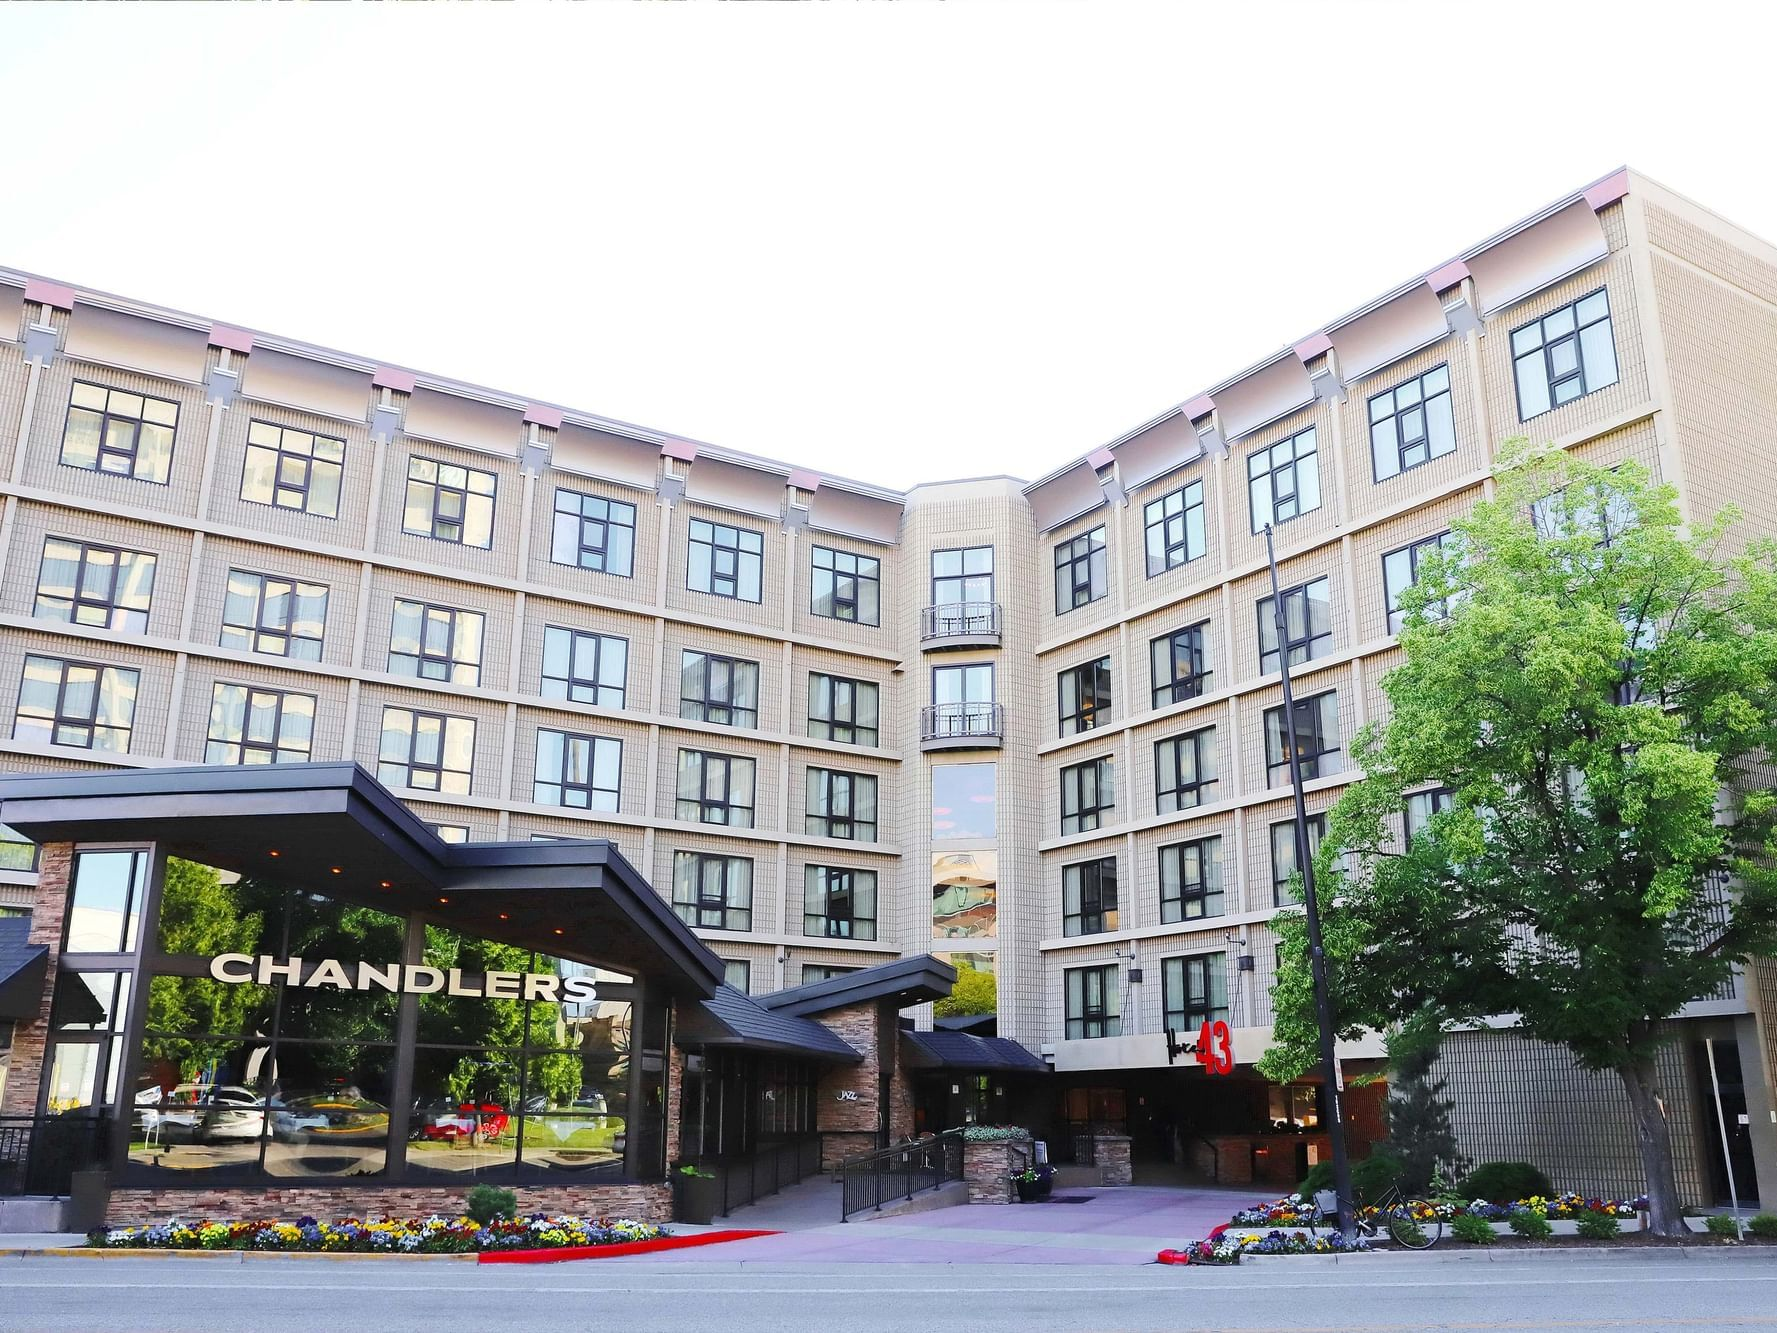 entrance to chandlers